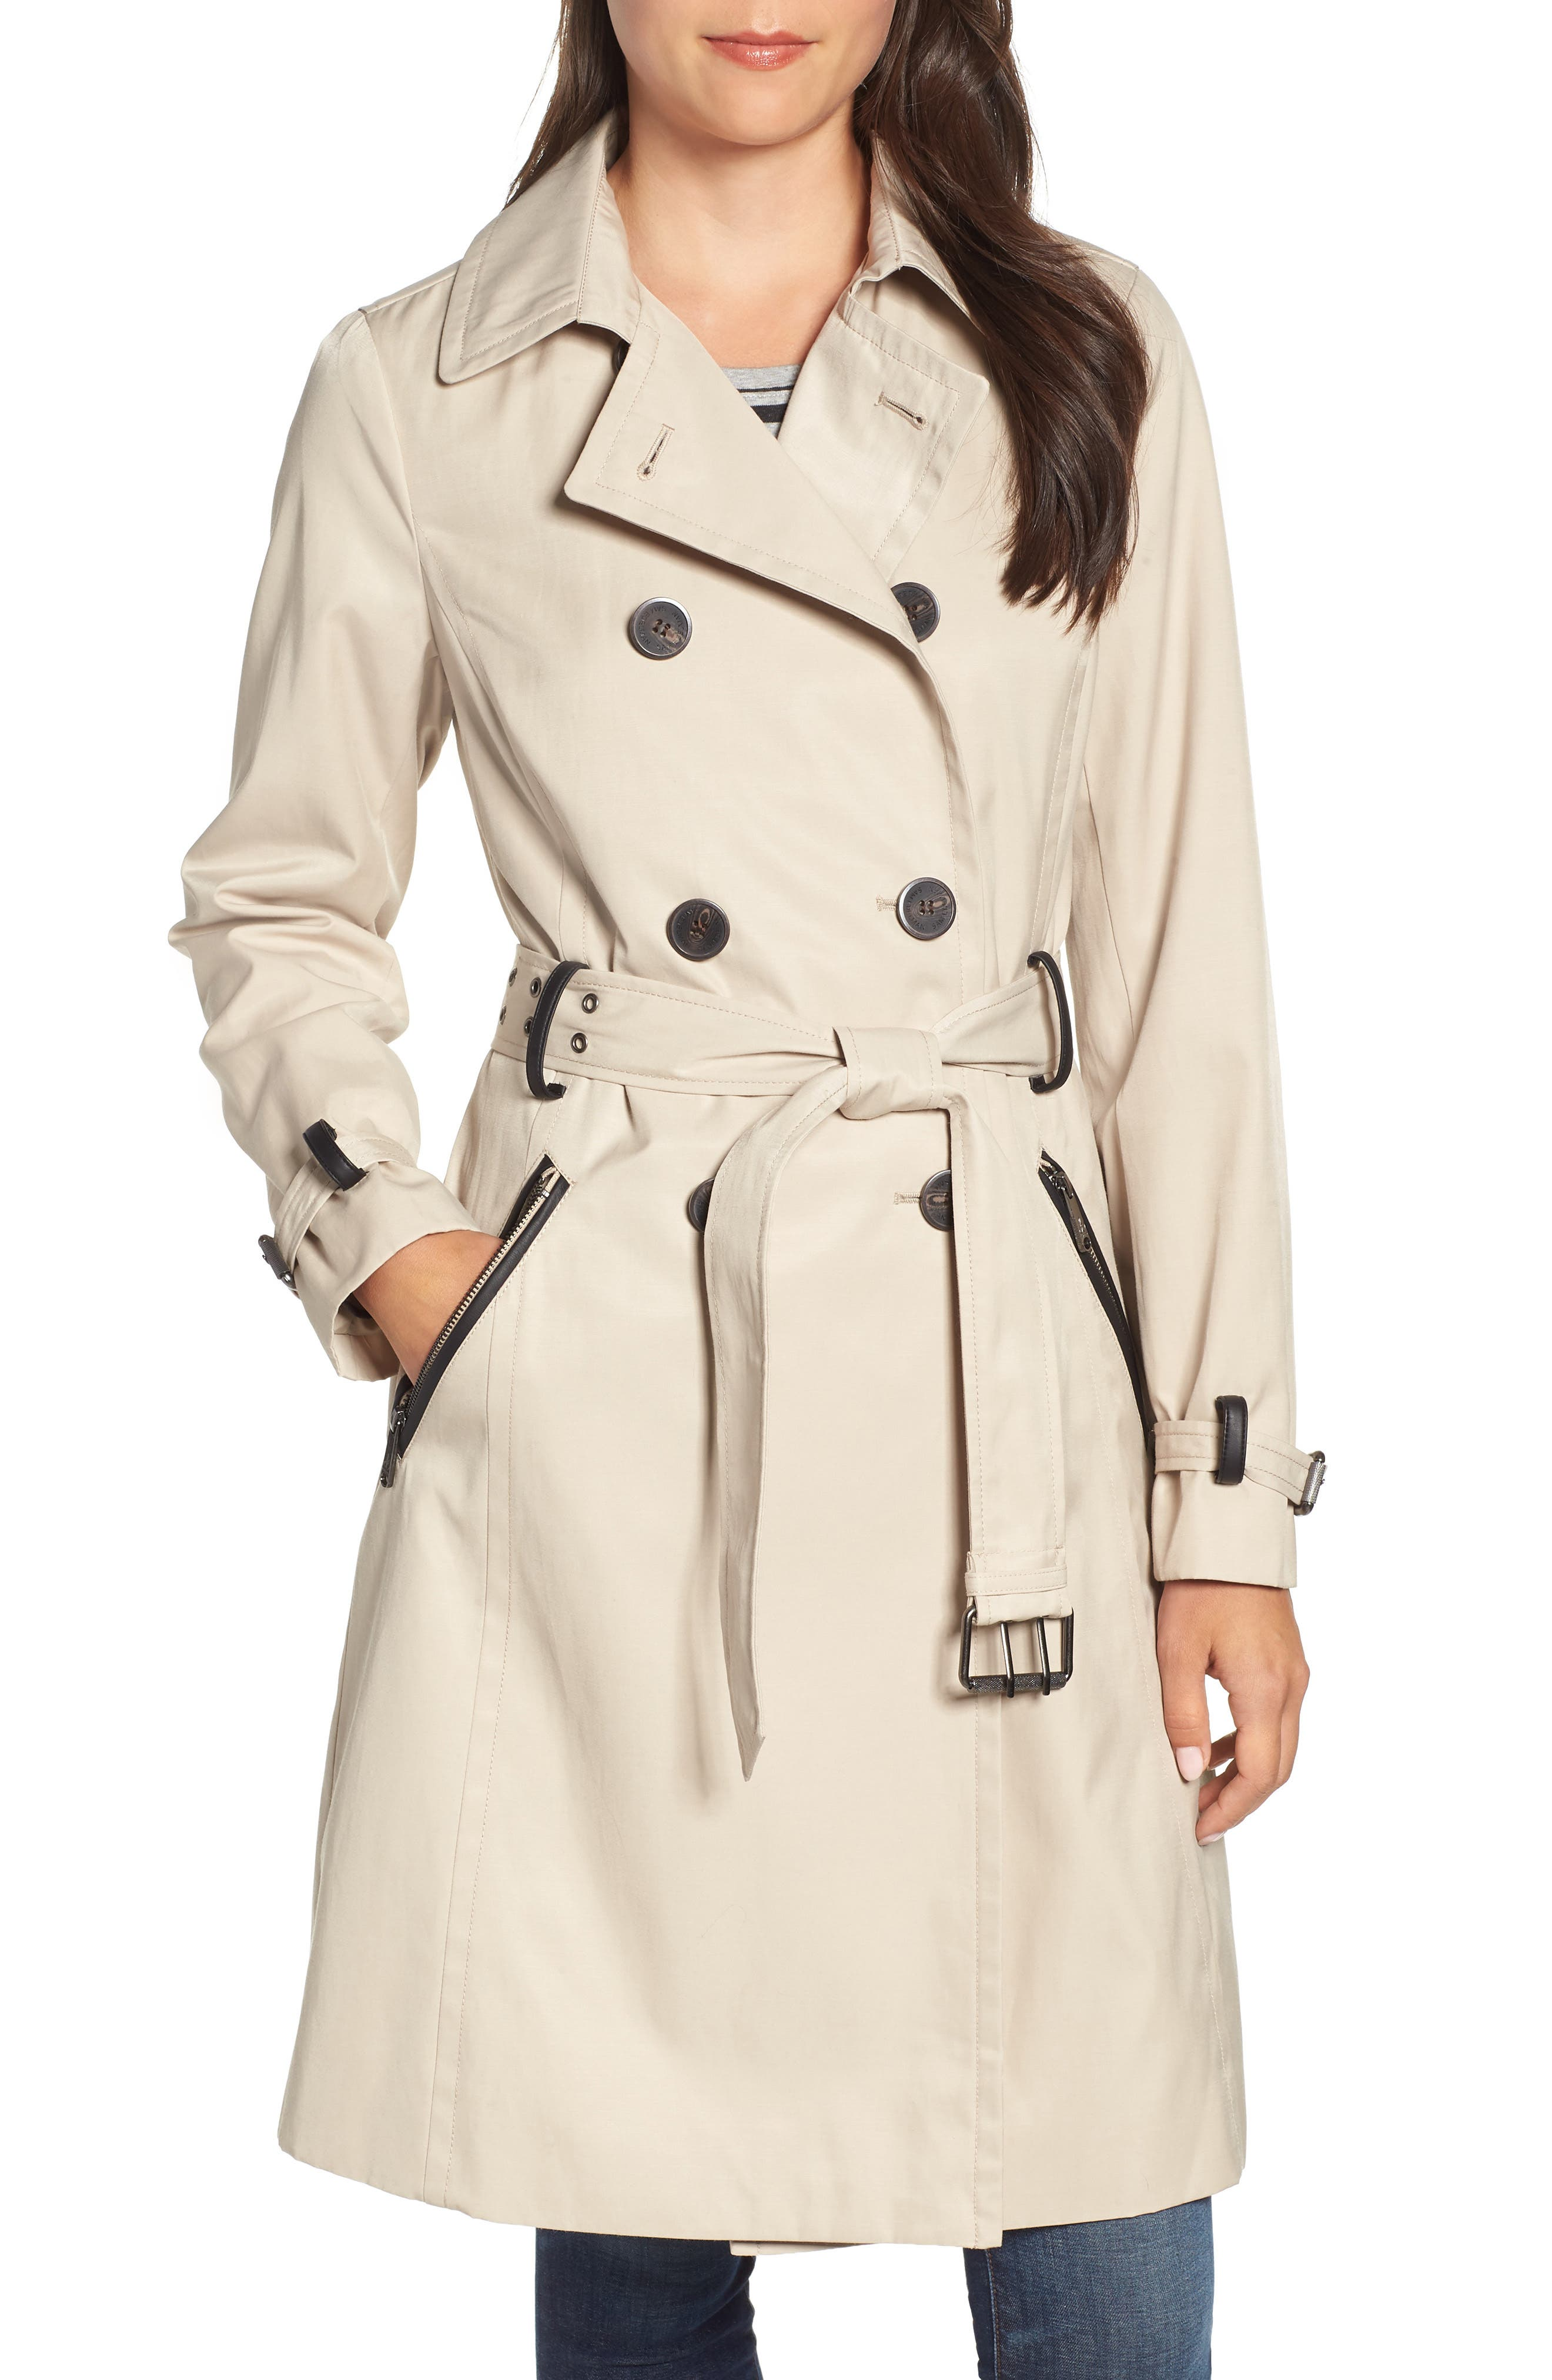 Packable Trench Coat,                             Main thumbnail 1, color,                             252